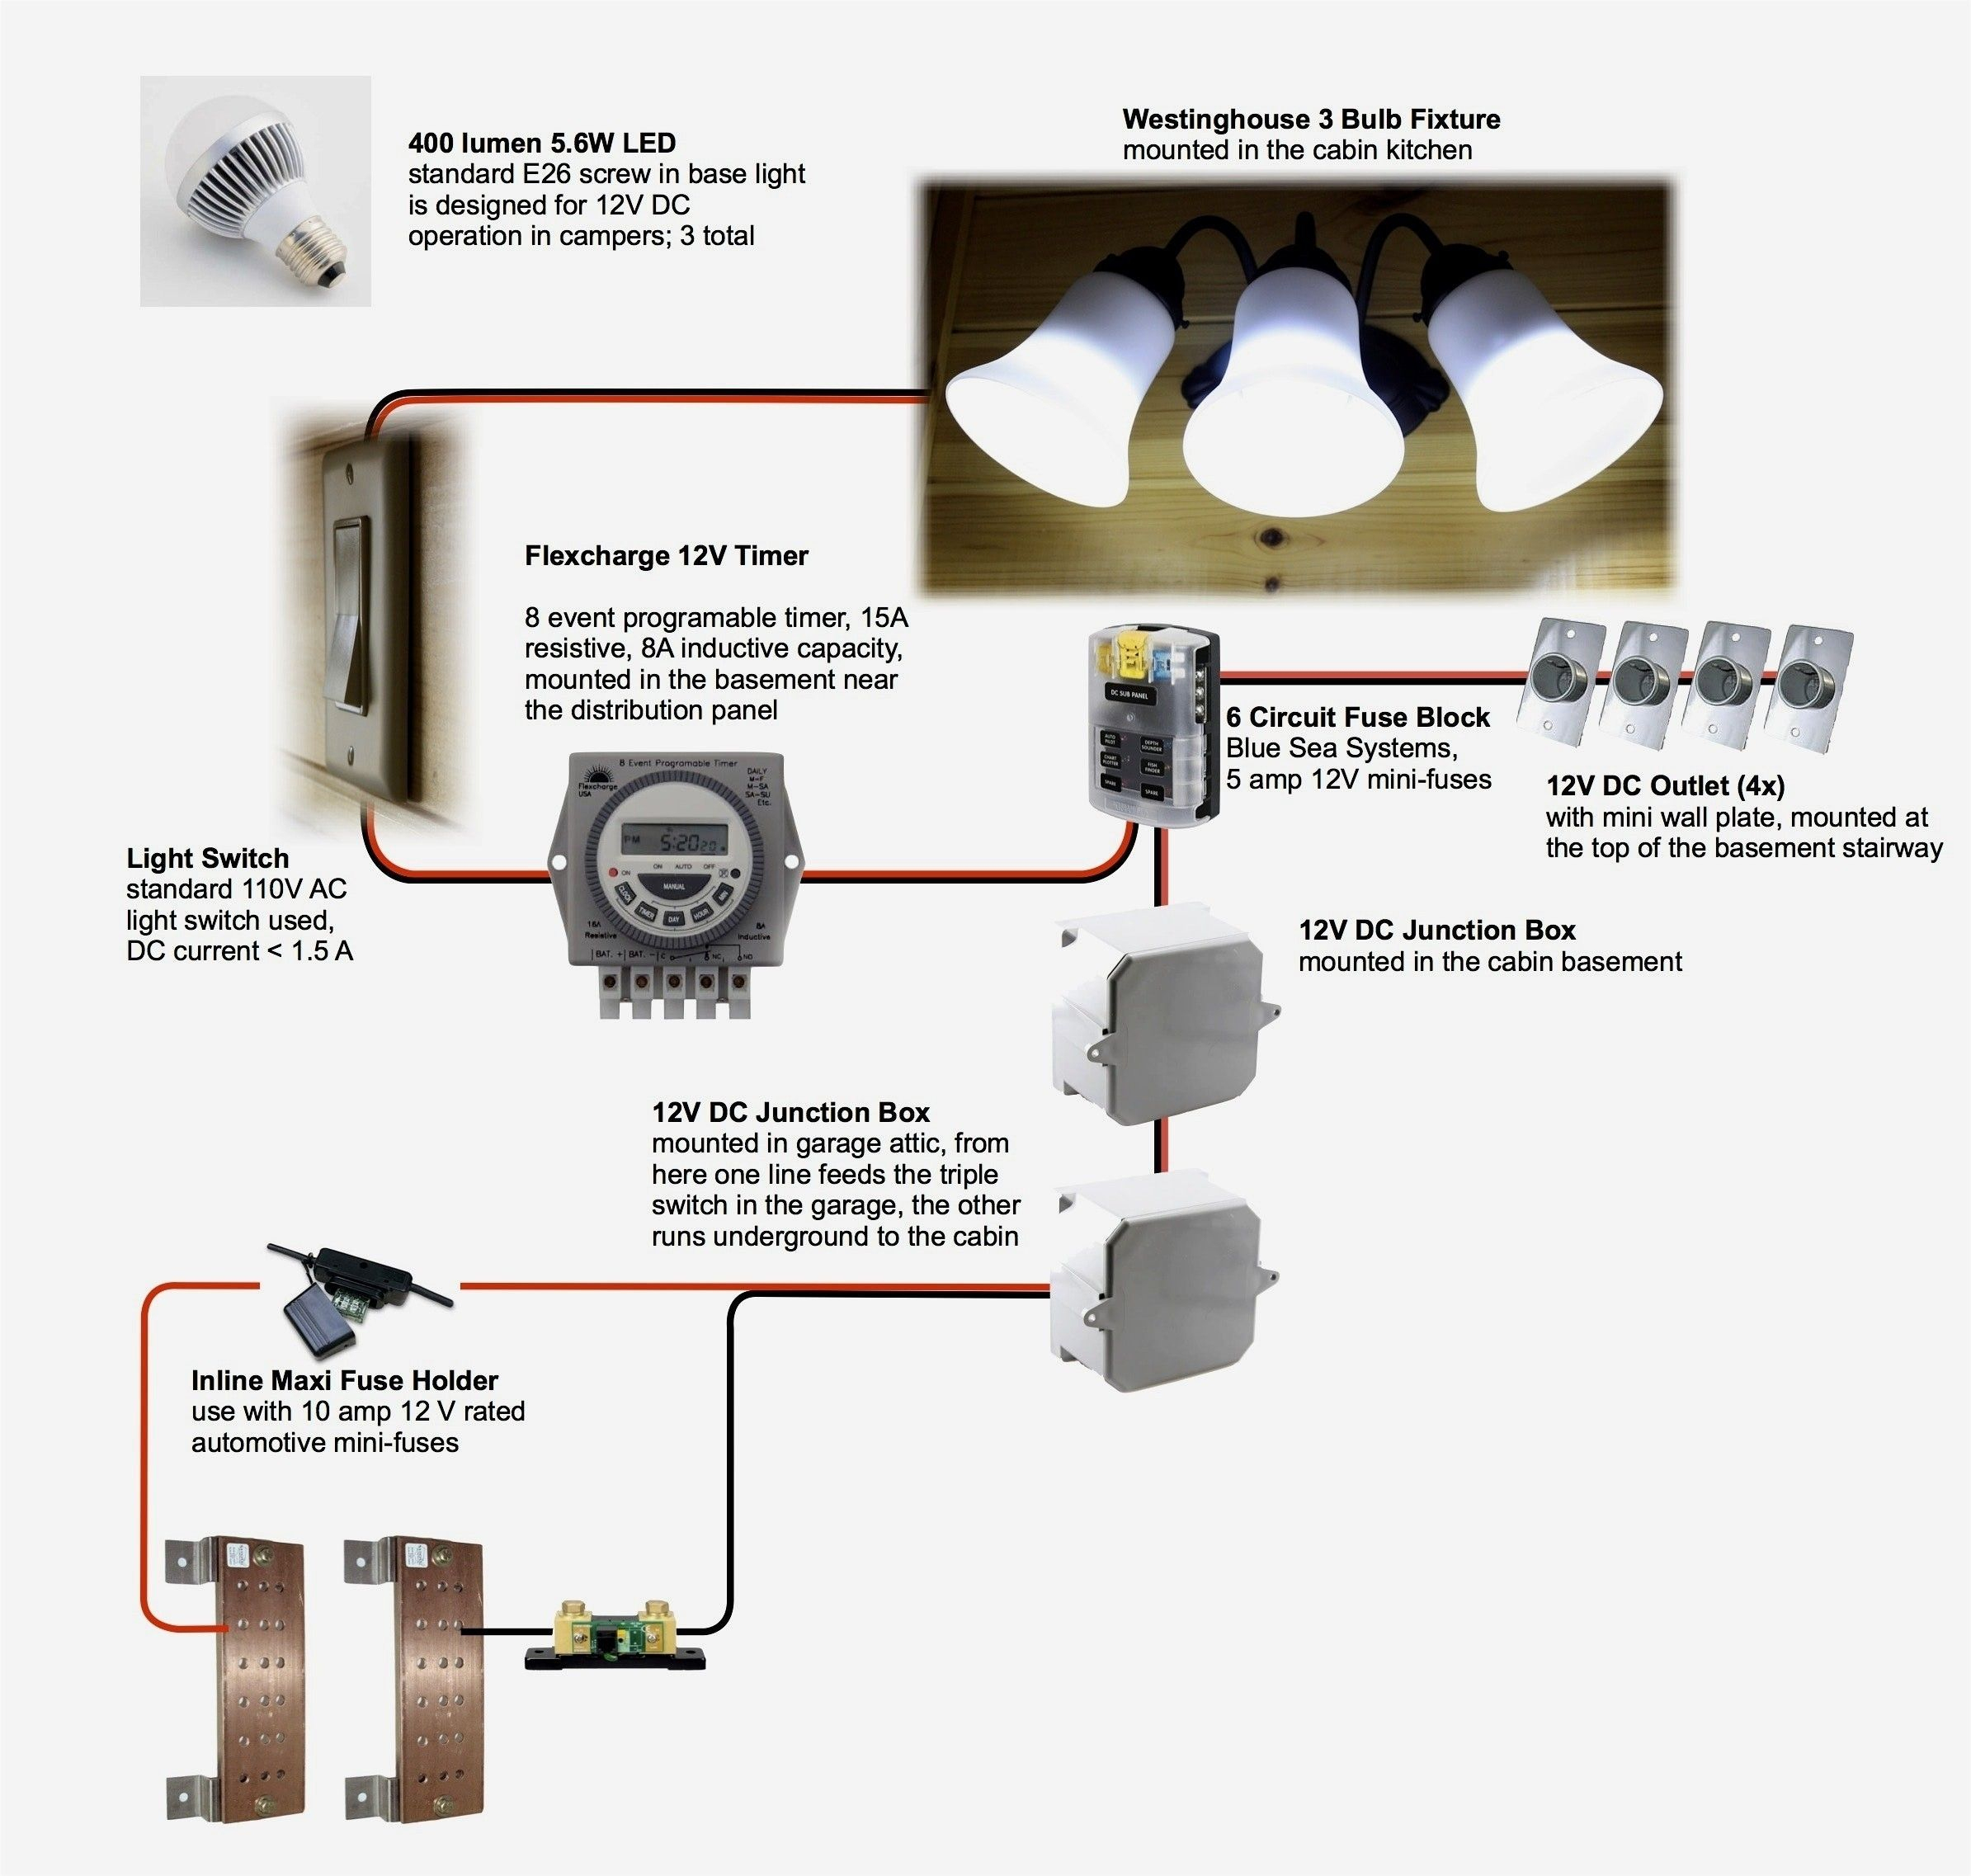 Wiring Plugs In Basement - Wiring Diagram Services • Intended For - Electrical Plug Wiring Diagram